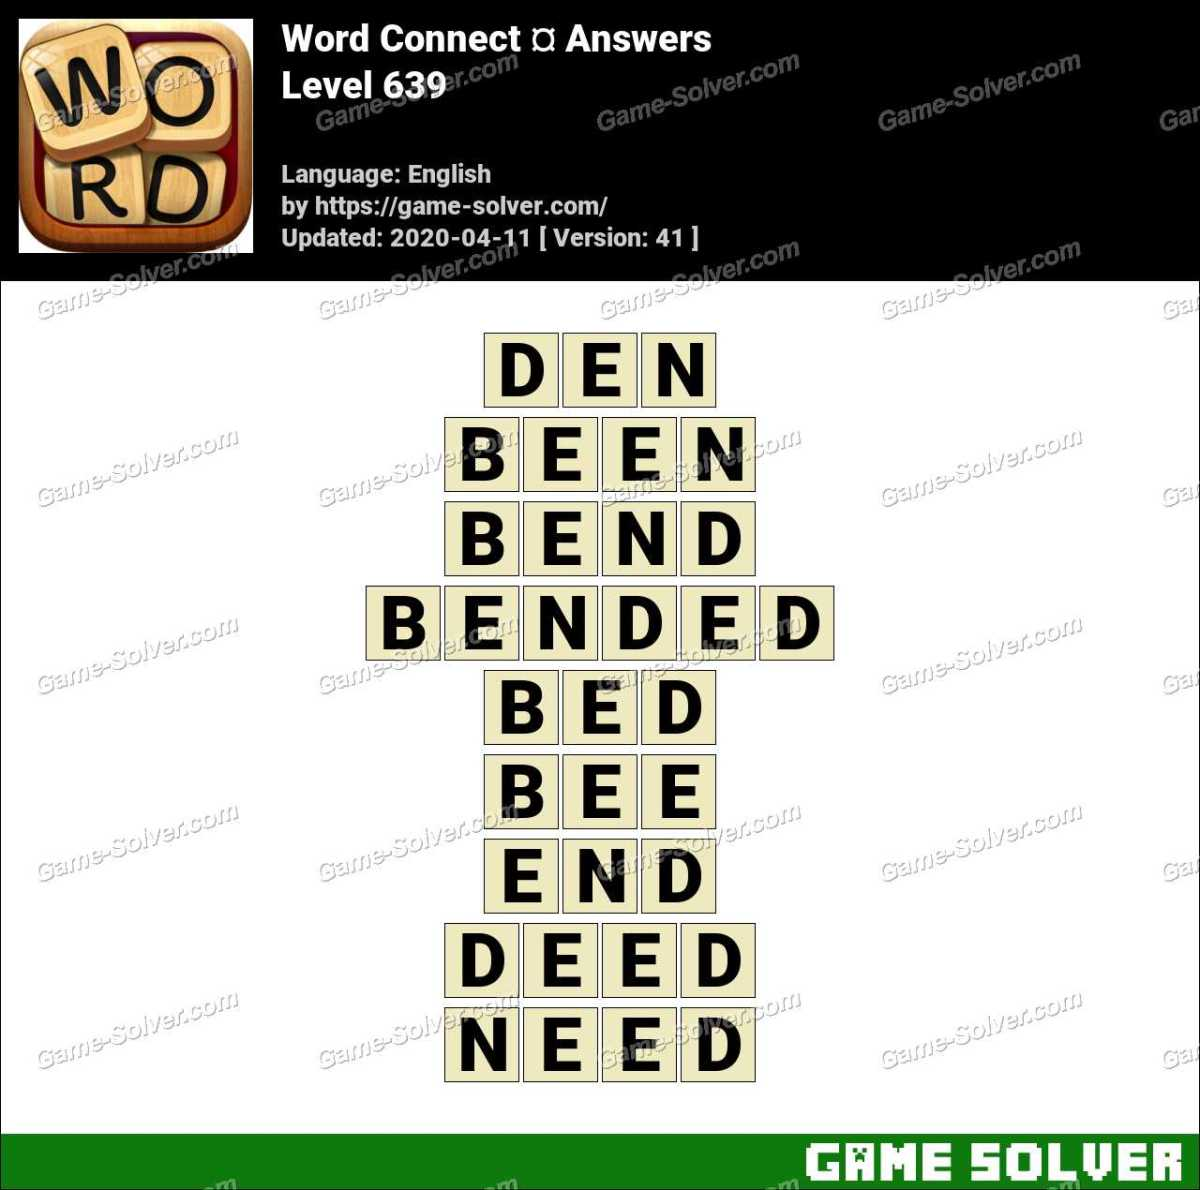 Word Connect Level 639 Answers